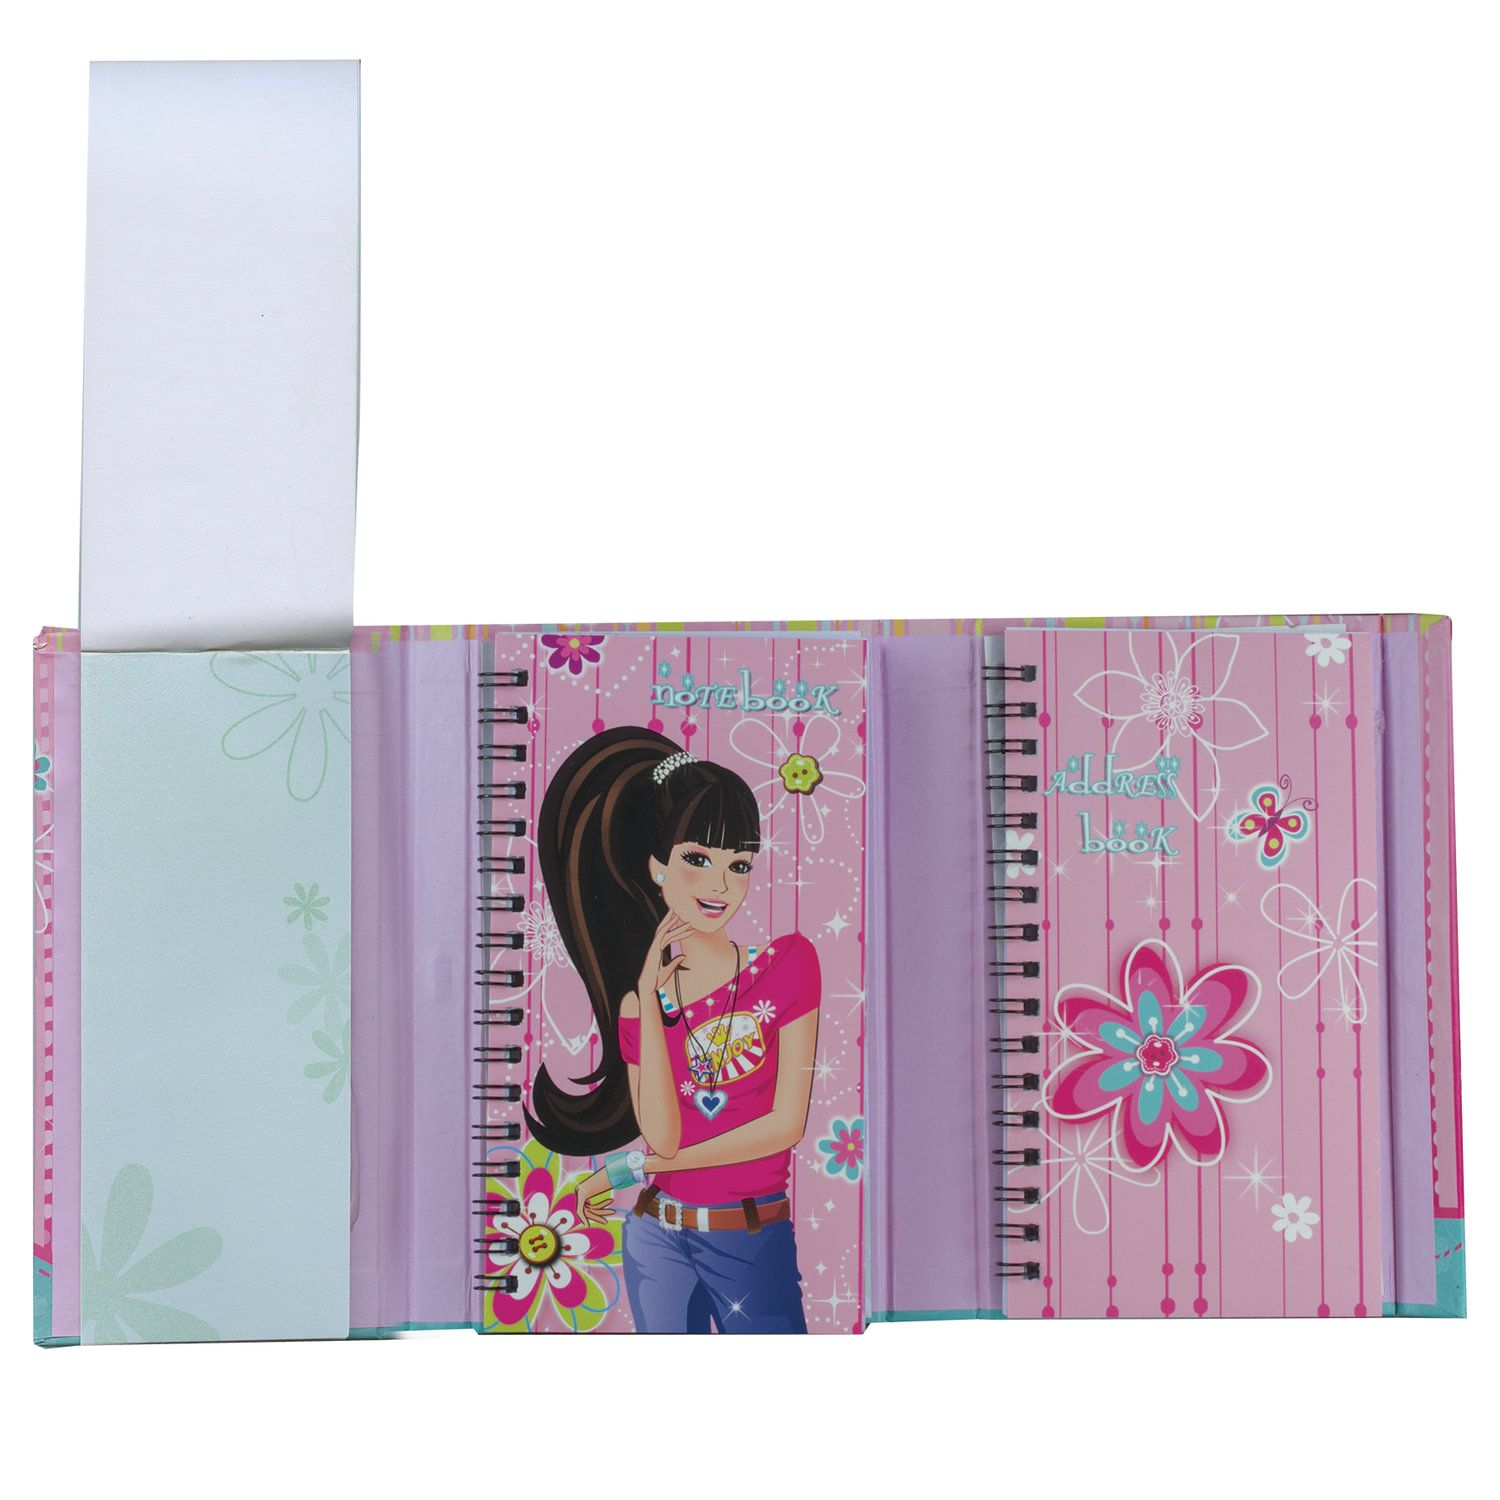 """BRAUBERG / Notebook with notebook """"Girl"""" SMALL FORMAT 50 + 50 sheets A6, 88x125 mm, hardcover"""